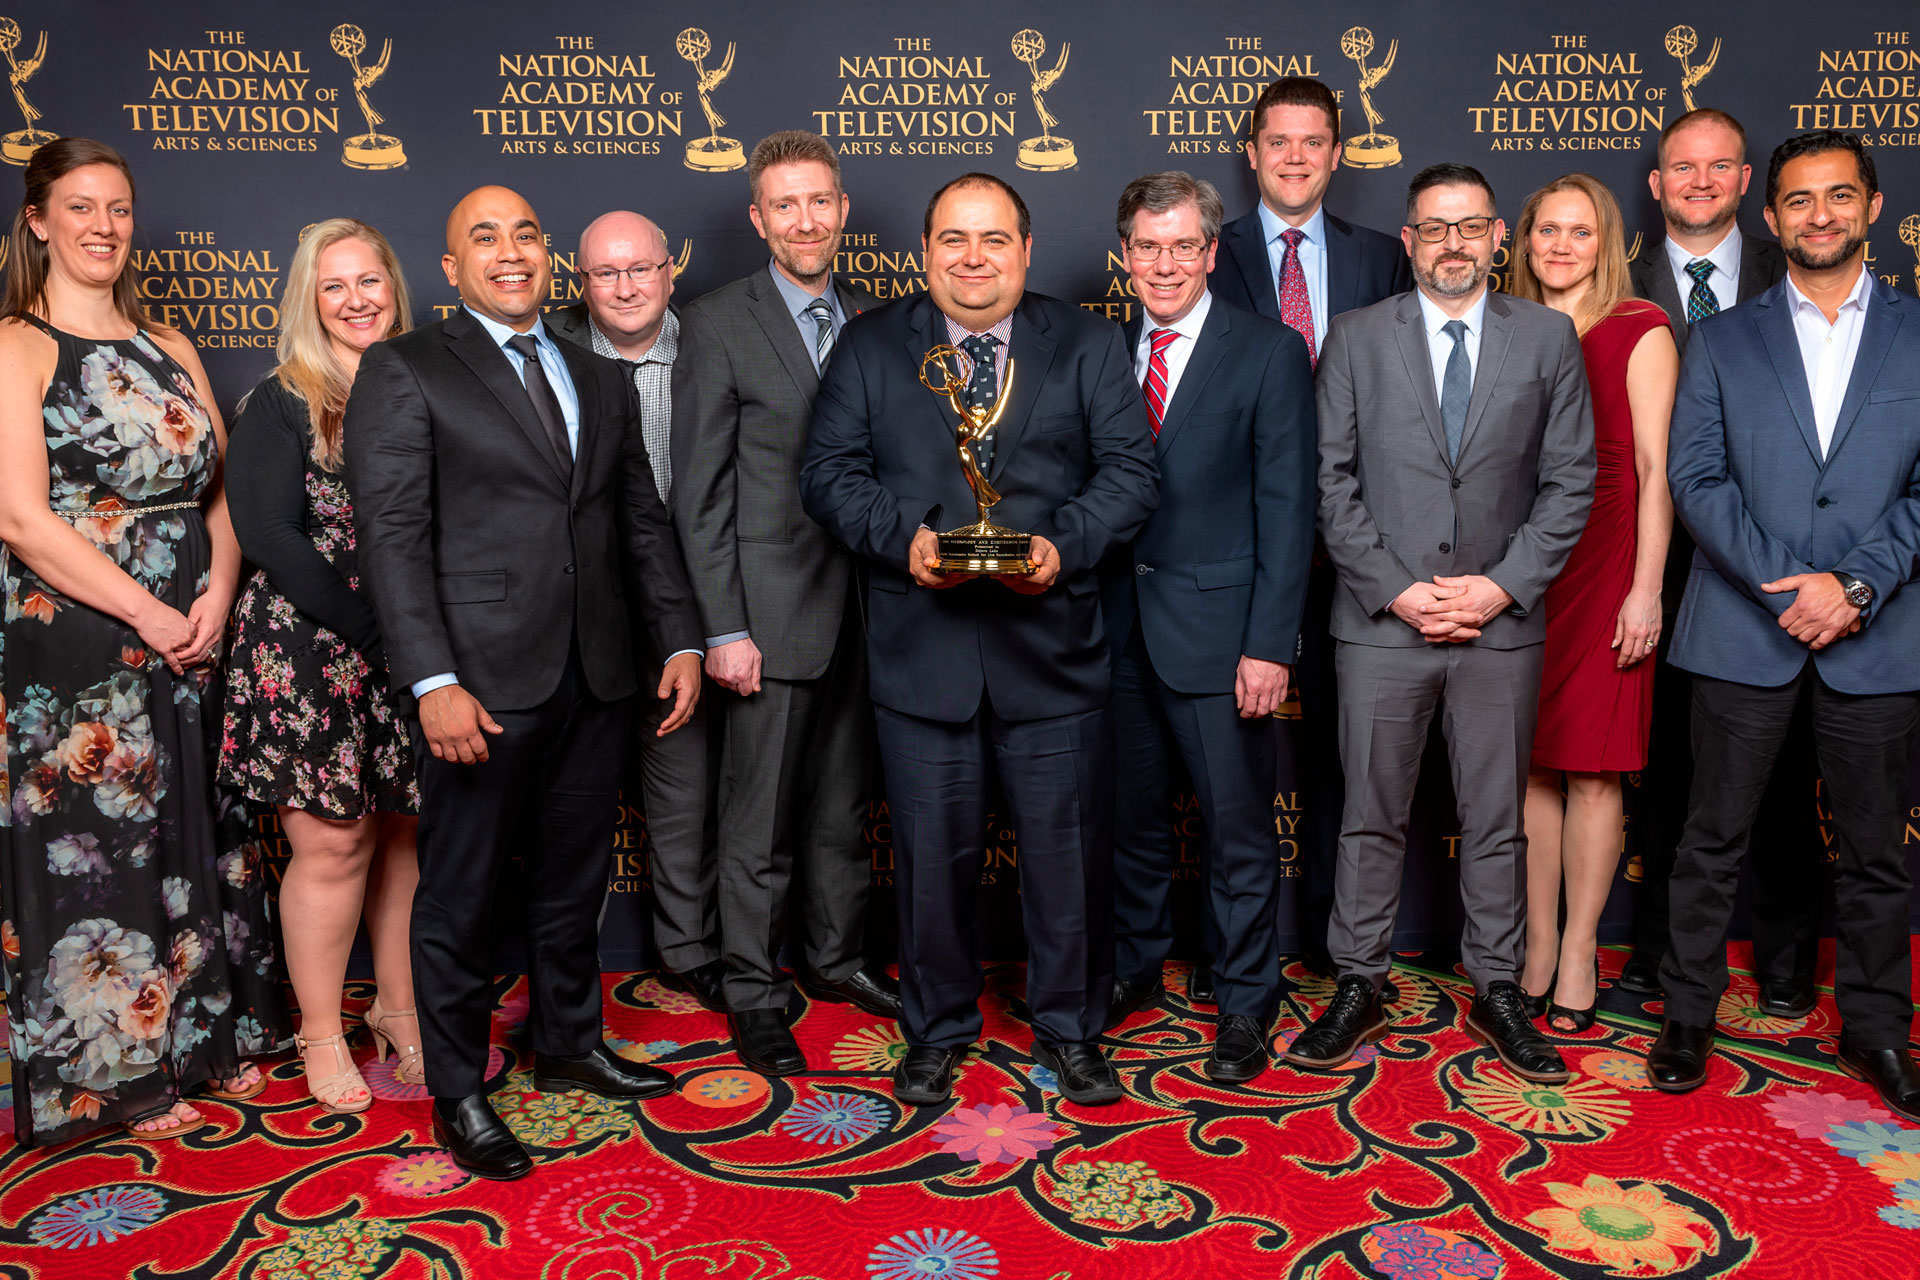 Dejero founder Bogdan Frusina and the Dejero team accepting the company's first Emmy® at the 70th annual Technology and Engineering Awards in 2019